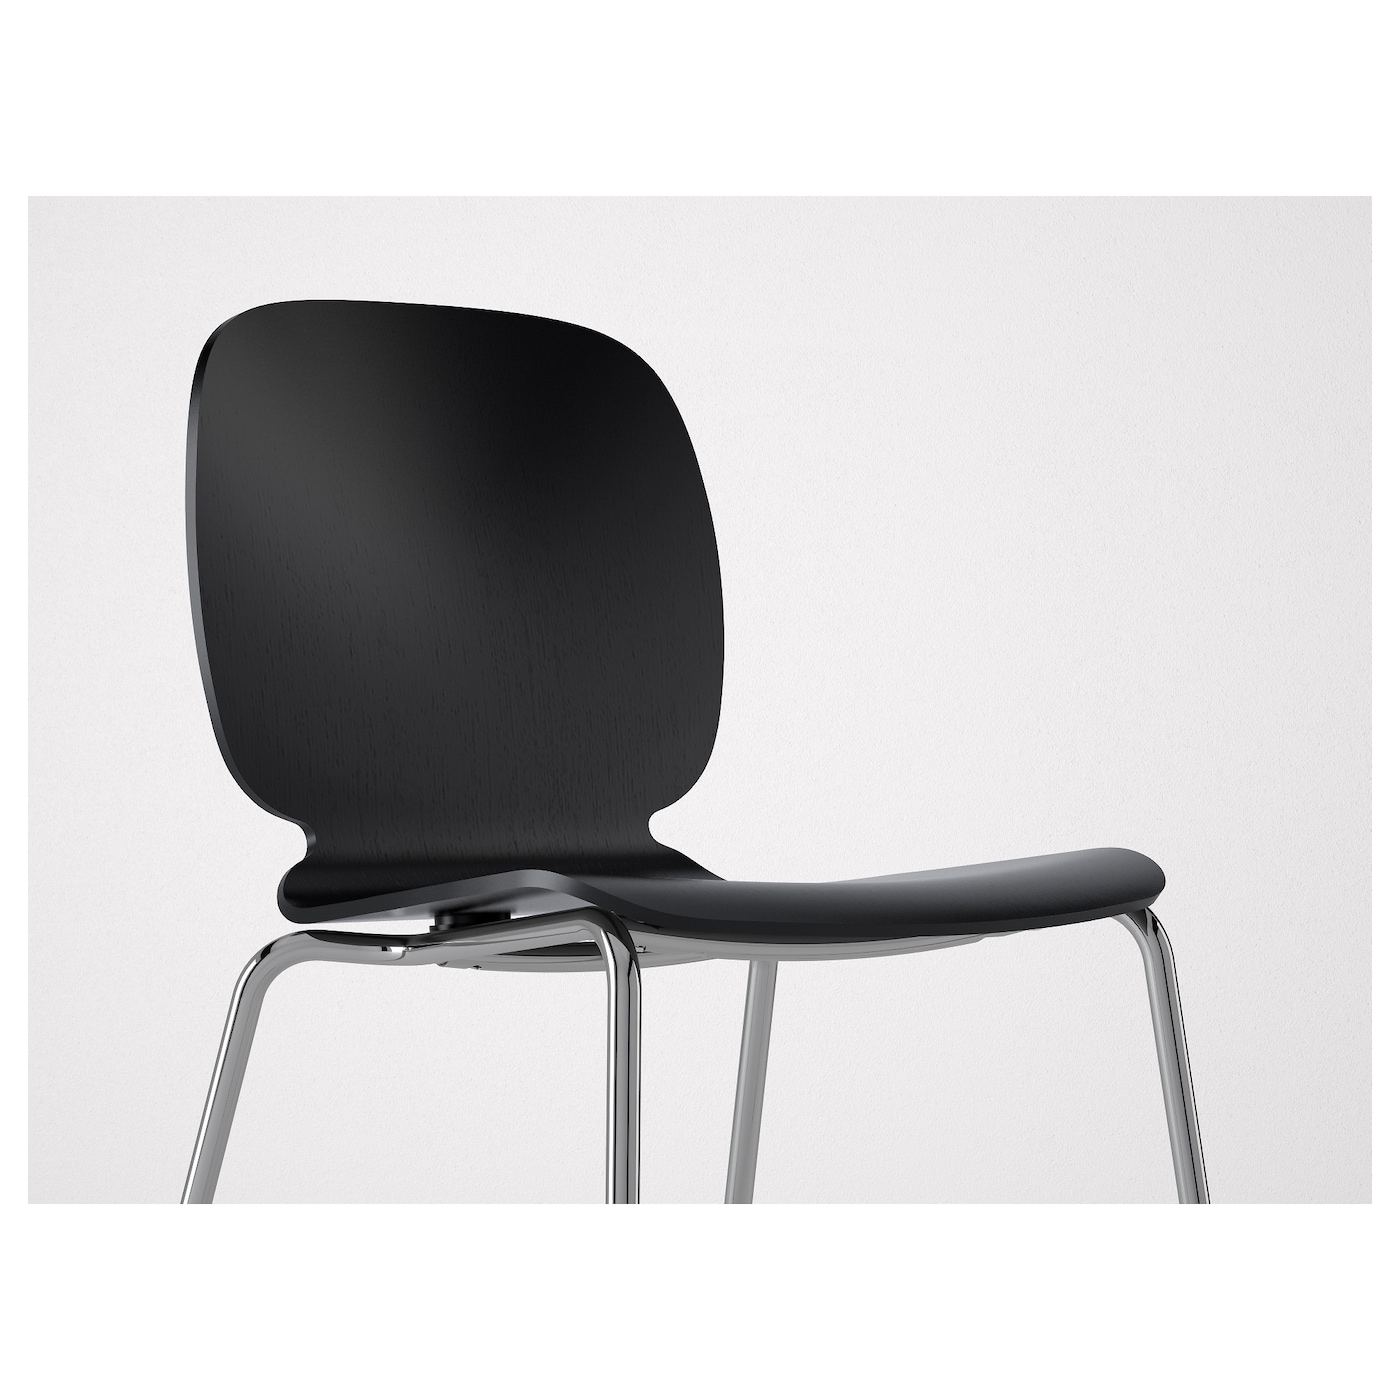 Svenbertil chaise noir broringe chrom ikea for Chaise assis genoux ikea